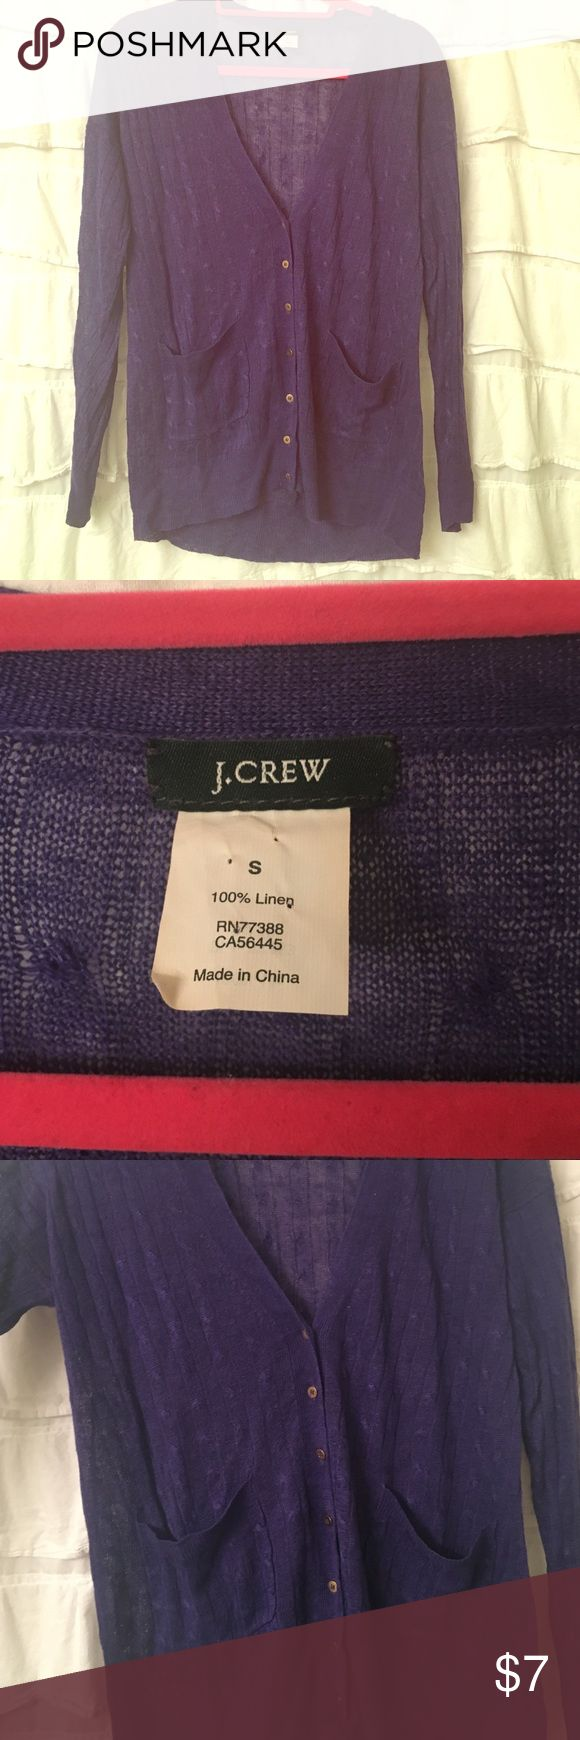 J. Crew purple cable knit boyfriend sweater S Long sleeve cable knit boyfriend or grandpa sweater size small.  (Runs big - I'm normally a medium). 2 pockets on front.  V neck with 7 gold buttons. J. Crew Sweaters Cardigans